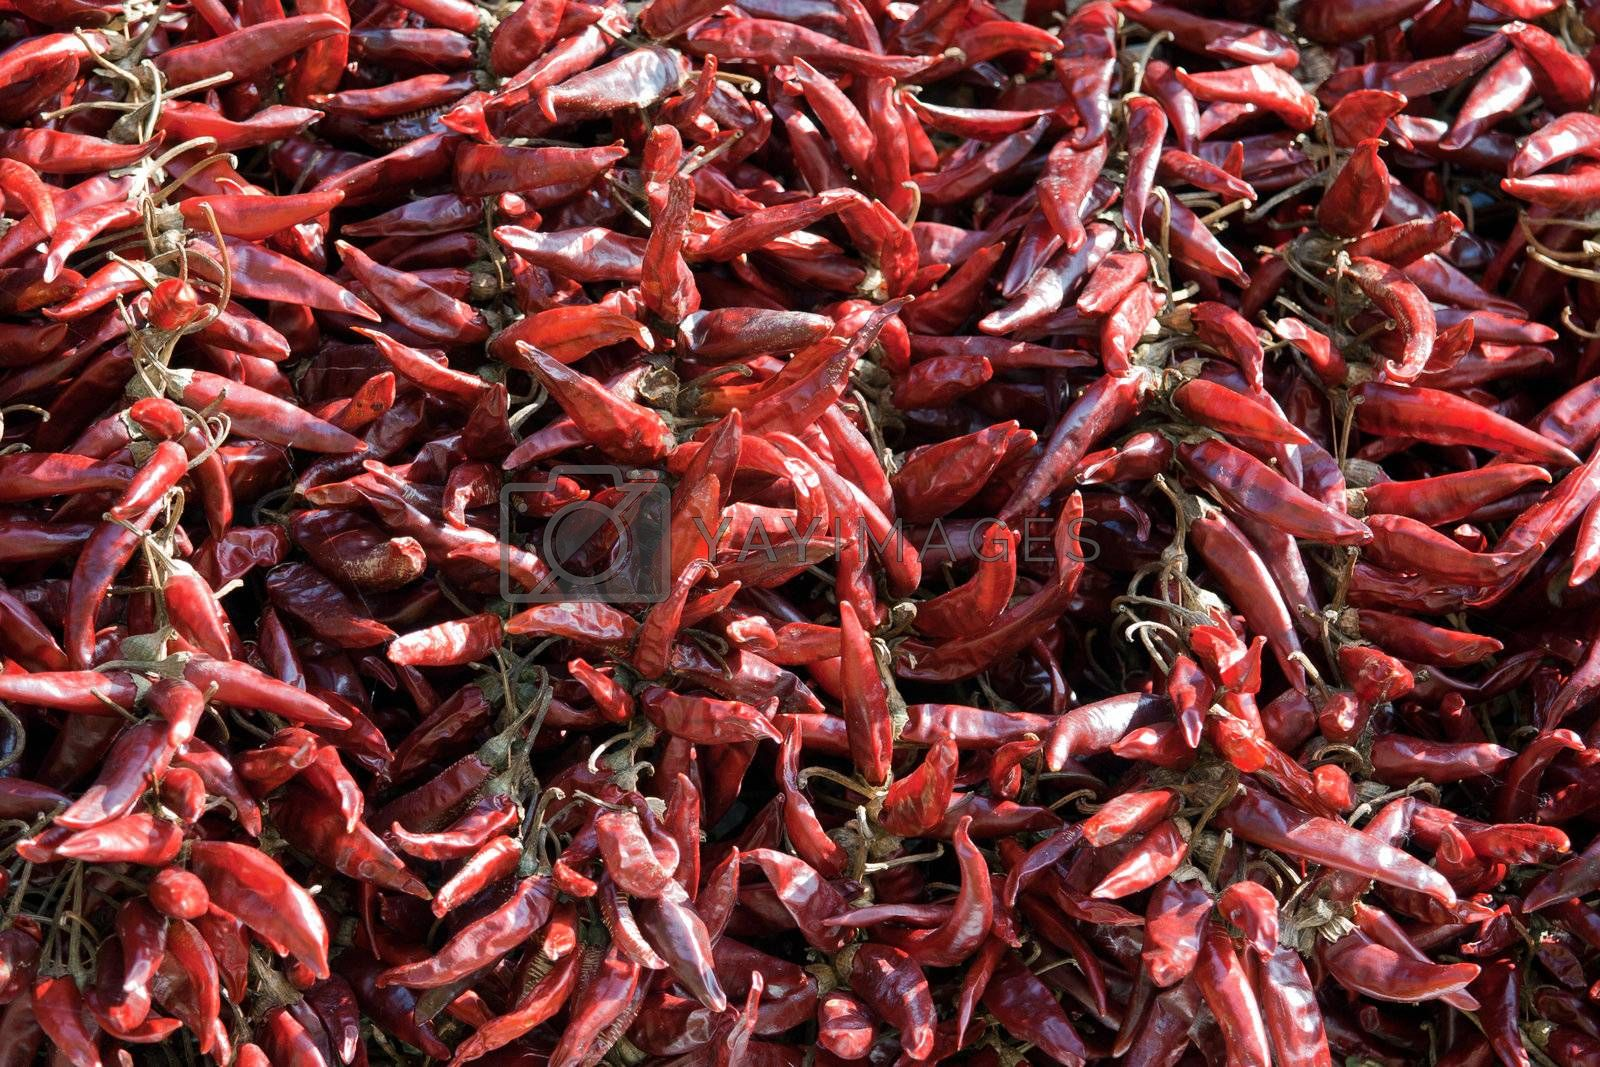 Bundles of dried red hot chili pepper